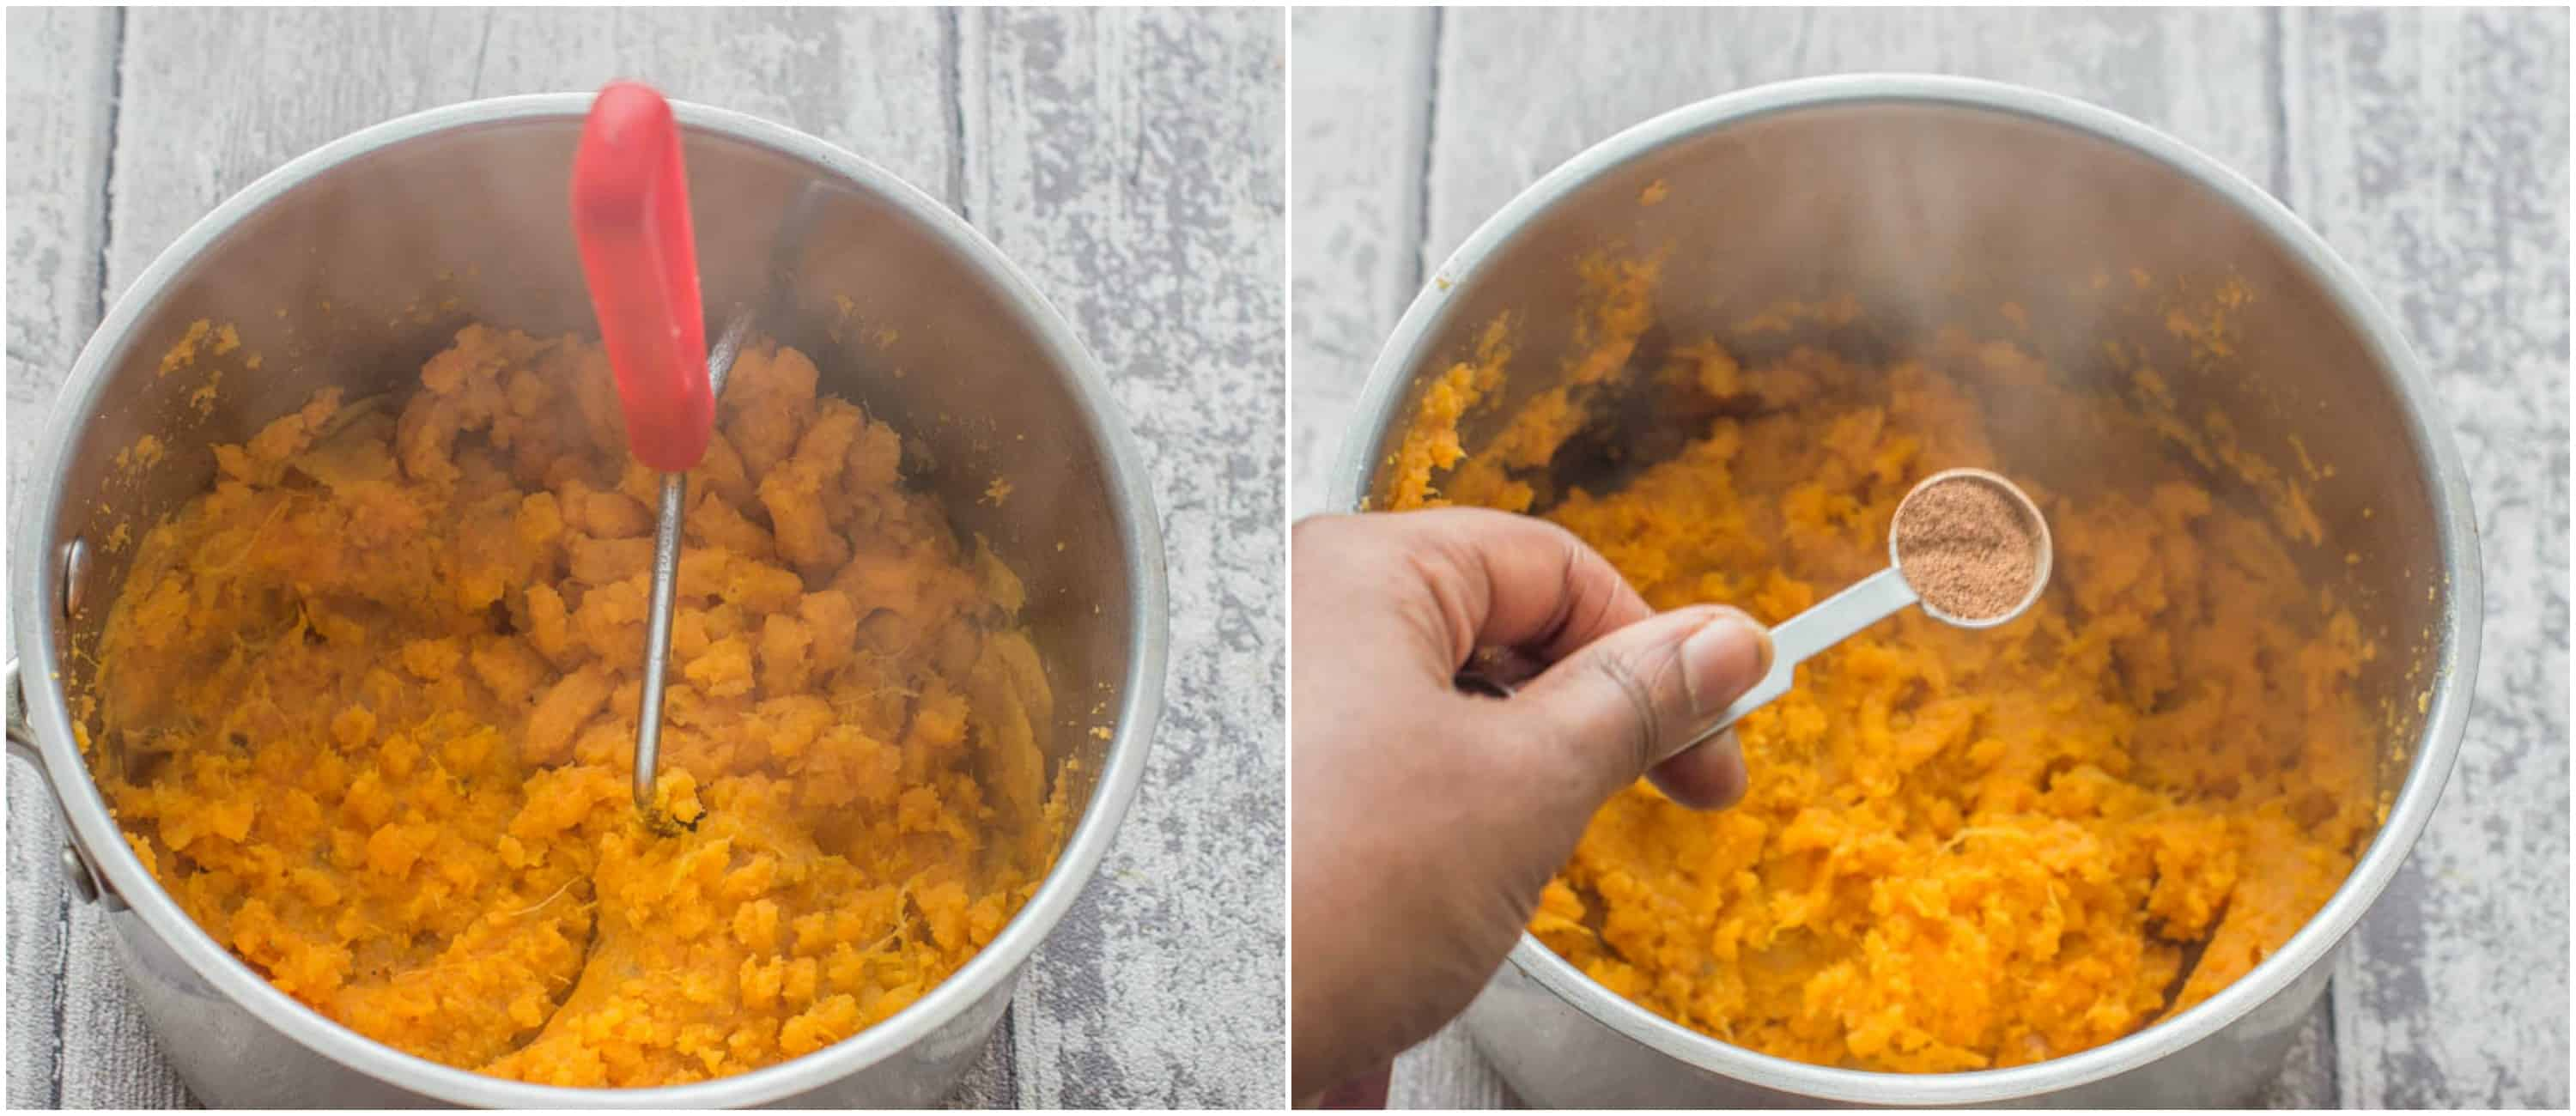 Easy mashed sweet potatoes steps 1-2